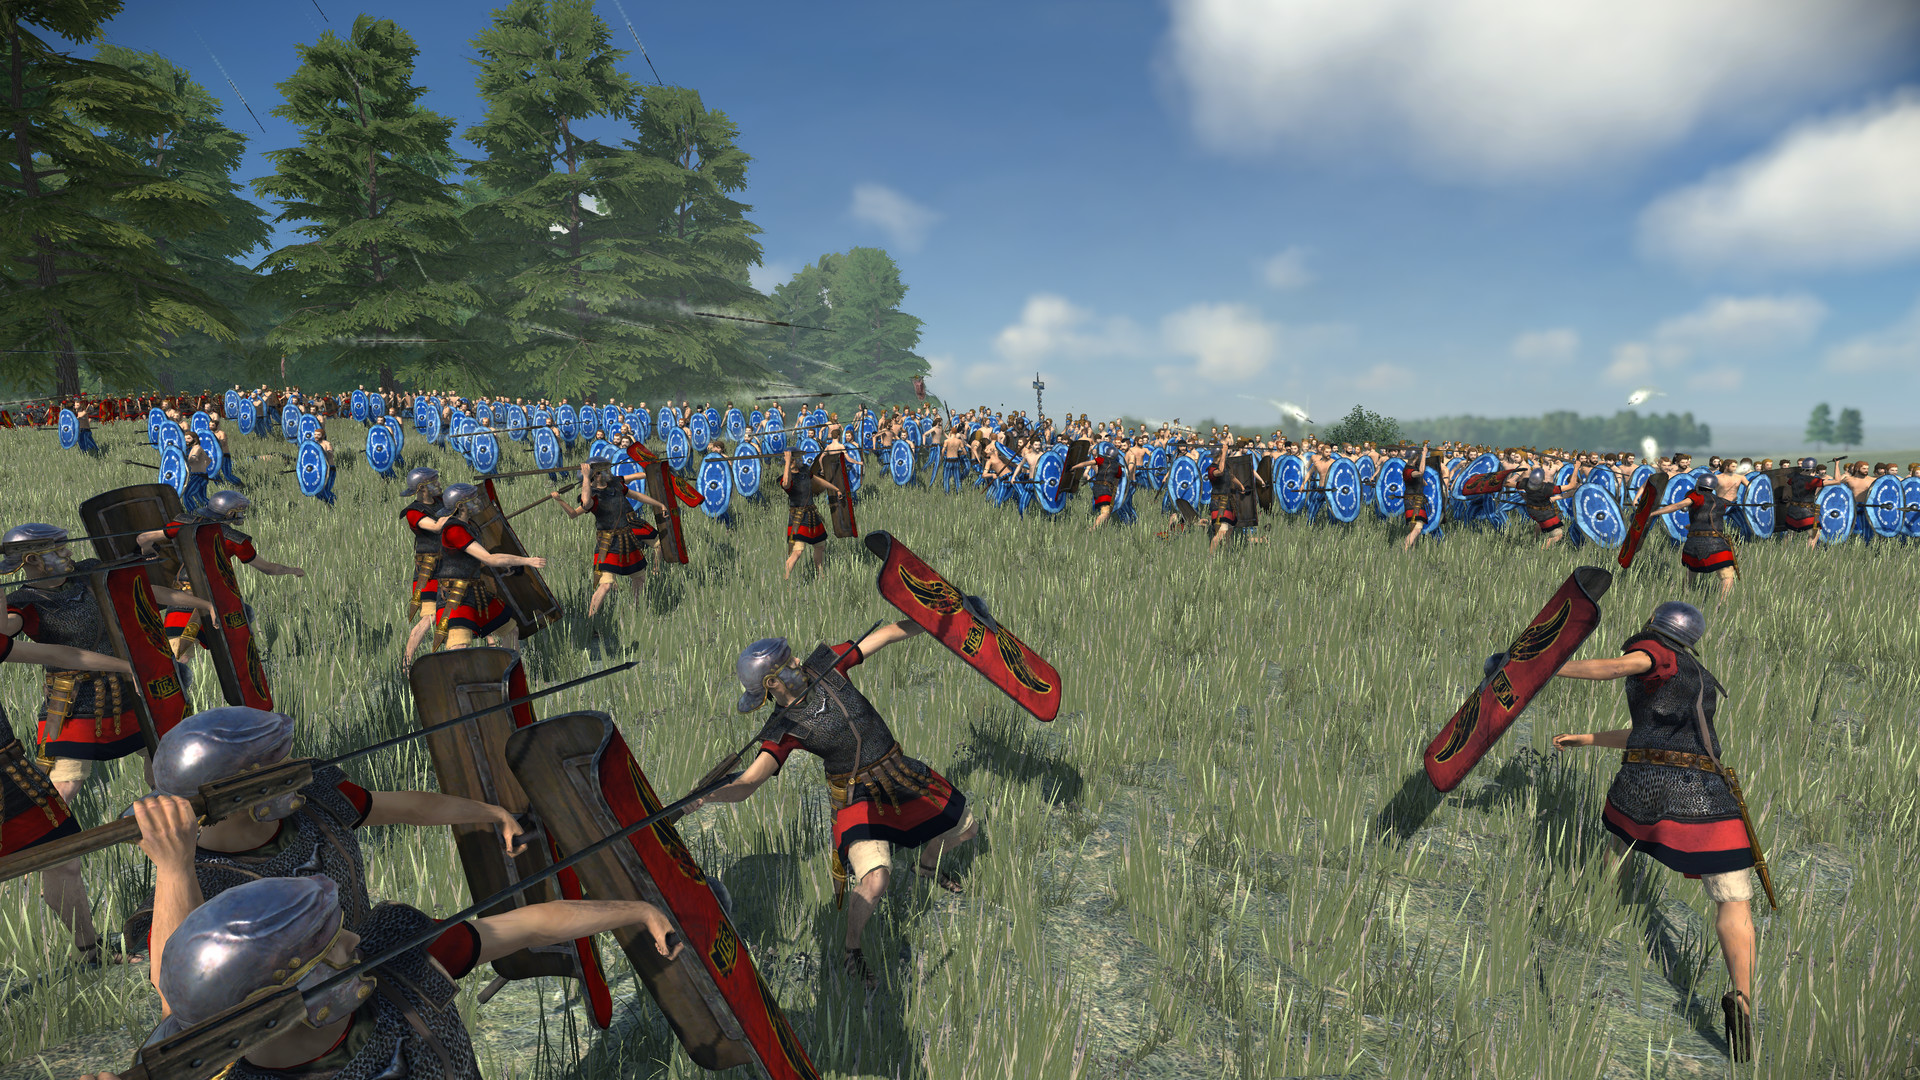 total-war-rome-remastered-pc-screenshot-2